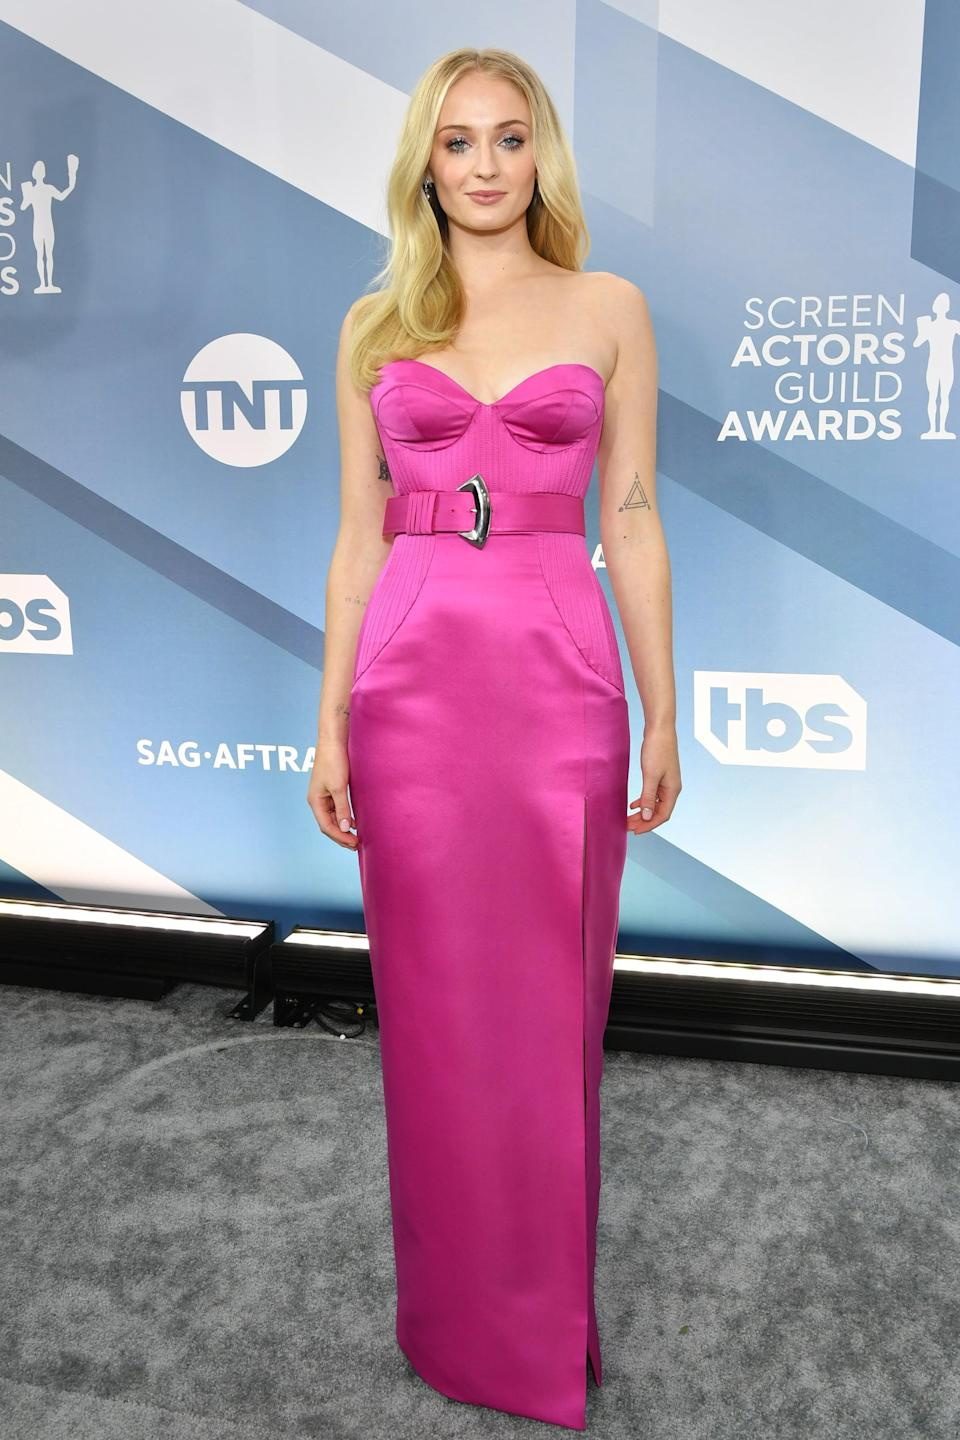 """<p>Sophie wore a custom, Barbie pink bustier <a href=""""https://www.popsugar.com/fashion/sophie-turner-hot-pink-dress-at-sag-awards-2020-47124428"""" class=""""link rapid-noclick-resp"""" rel=""""nofollow noopener"""" target=""""_blank"""" data-ylk=""""slk:gown to the 2020 SAG Awards"""">gown to the 2020 SAG Awards</a> with <a class=""""link rapid-noclick-resp"""" href=""""https://www.popsugar.com/Joe-Jonas"""" rel=""""nofollow noopener"""" target=""""_blank"""" data-ylk=""""slk:Joe Jonas"""">Joe Jonas</a>, accessorizing with LV High Jewelry and metallic sandals.</p>"""